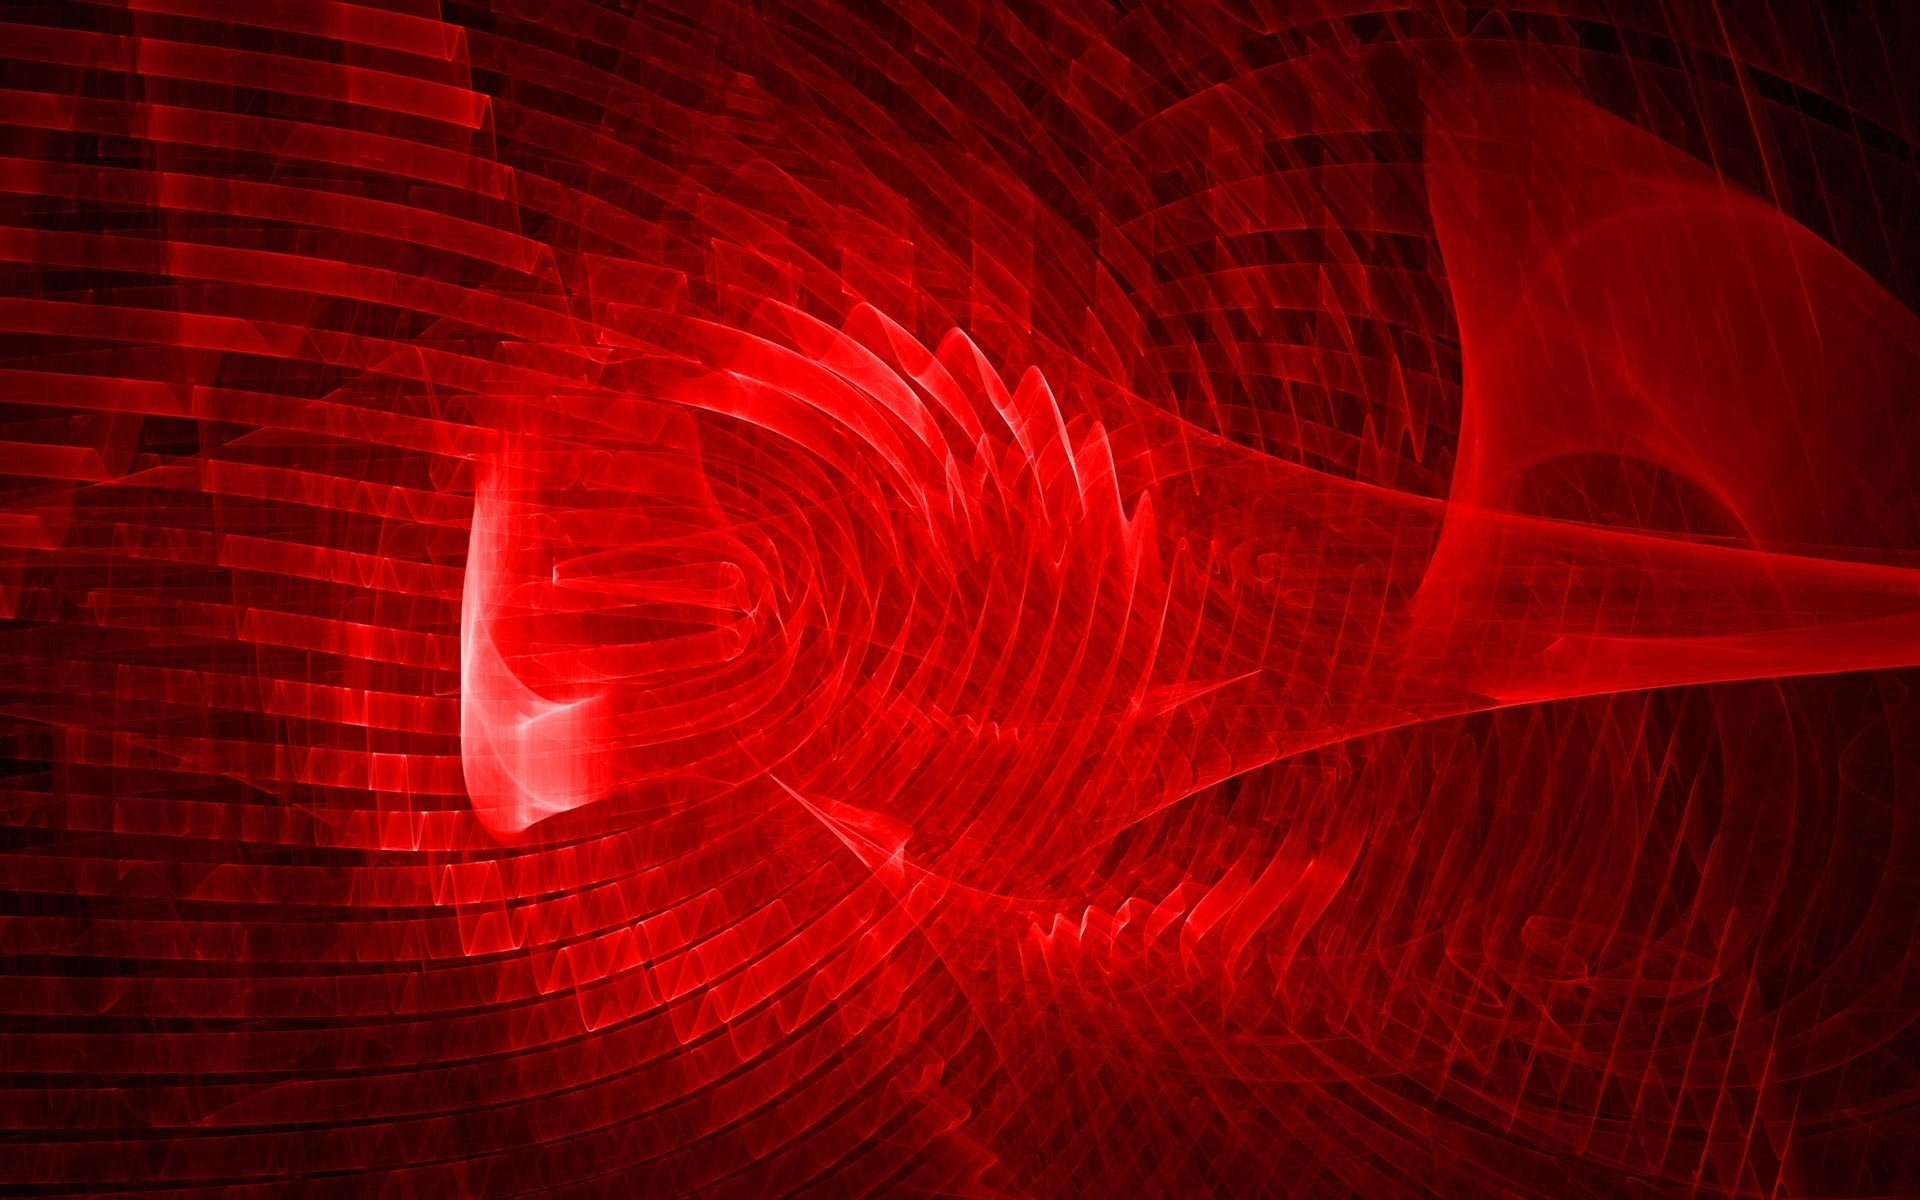 Abstract - Red  Artistic Abstract Plasma Lines Wave Wallpaper